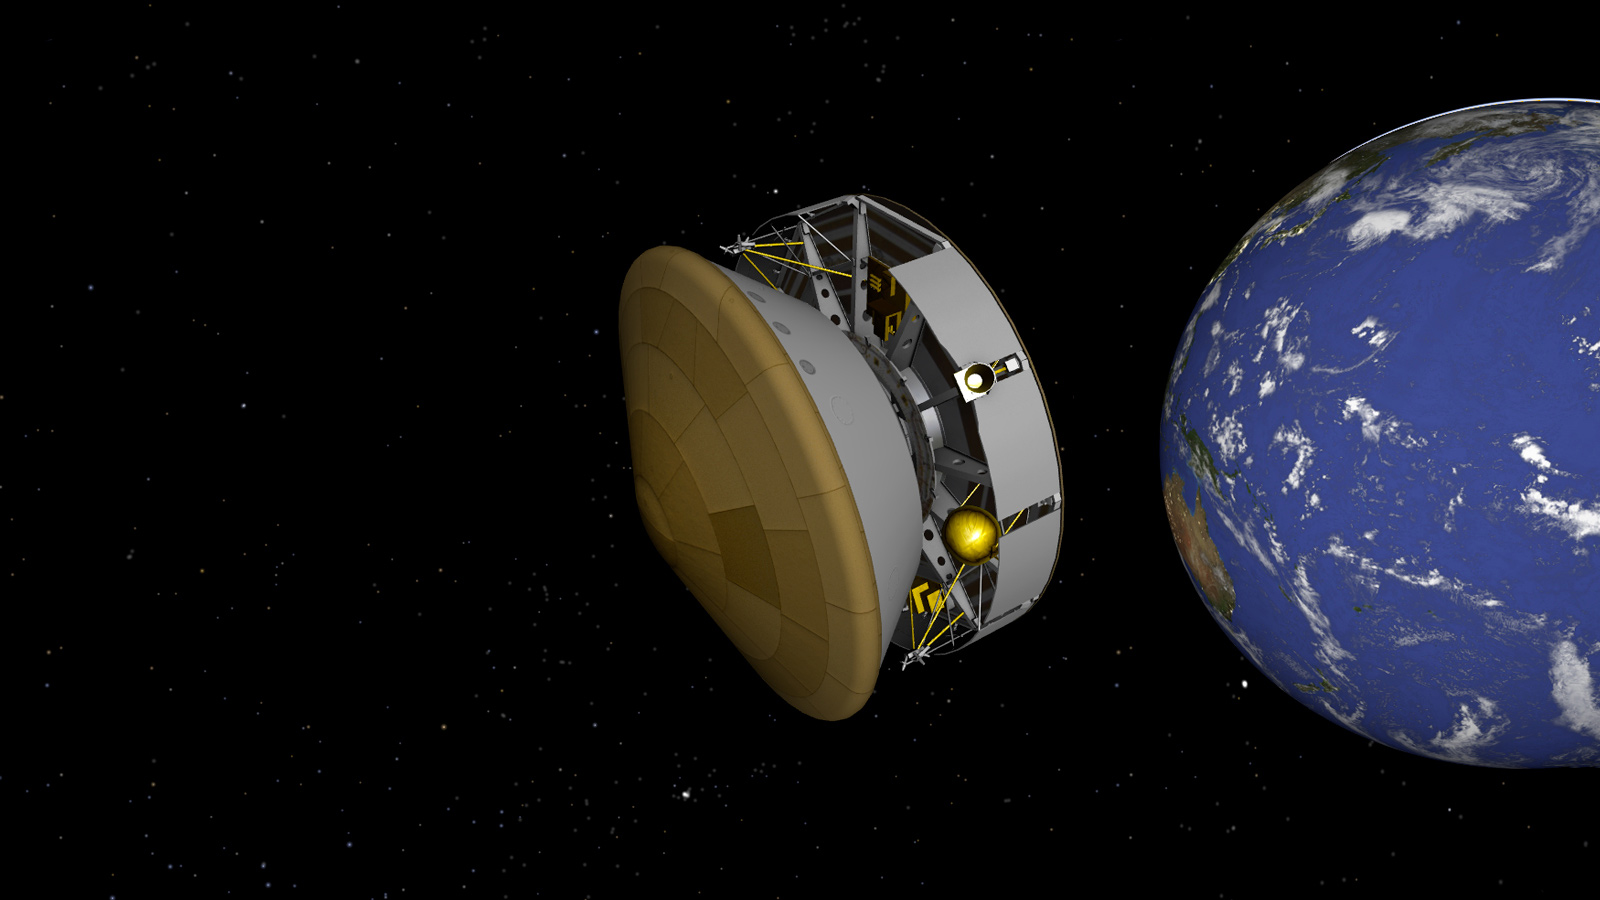 Read more about the article Space Mission and Science News | NASA Jet Propulsion Laboratory